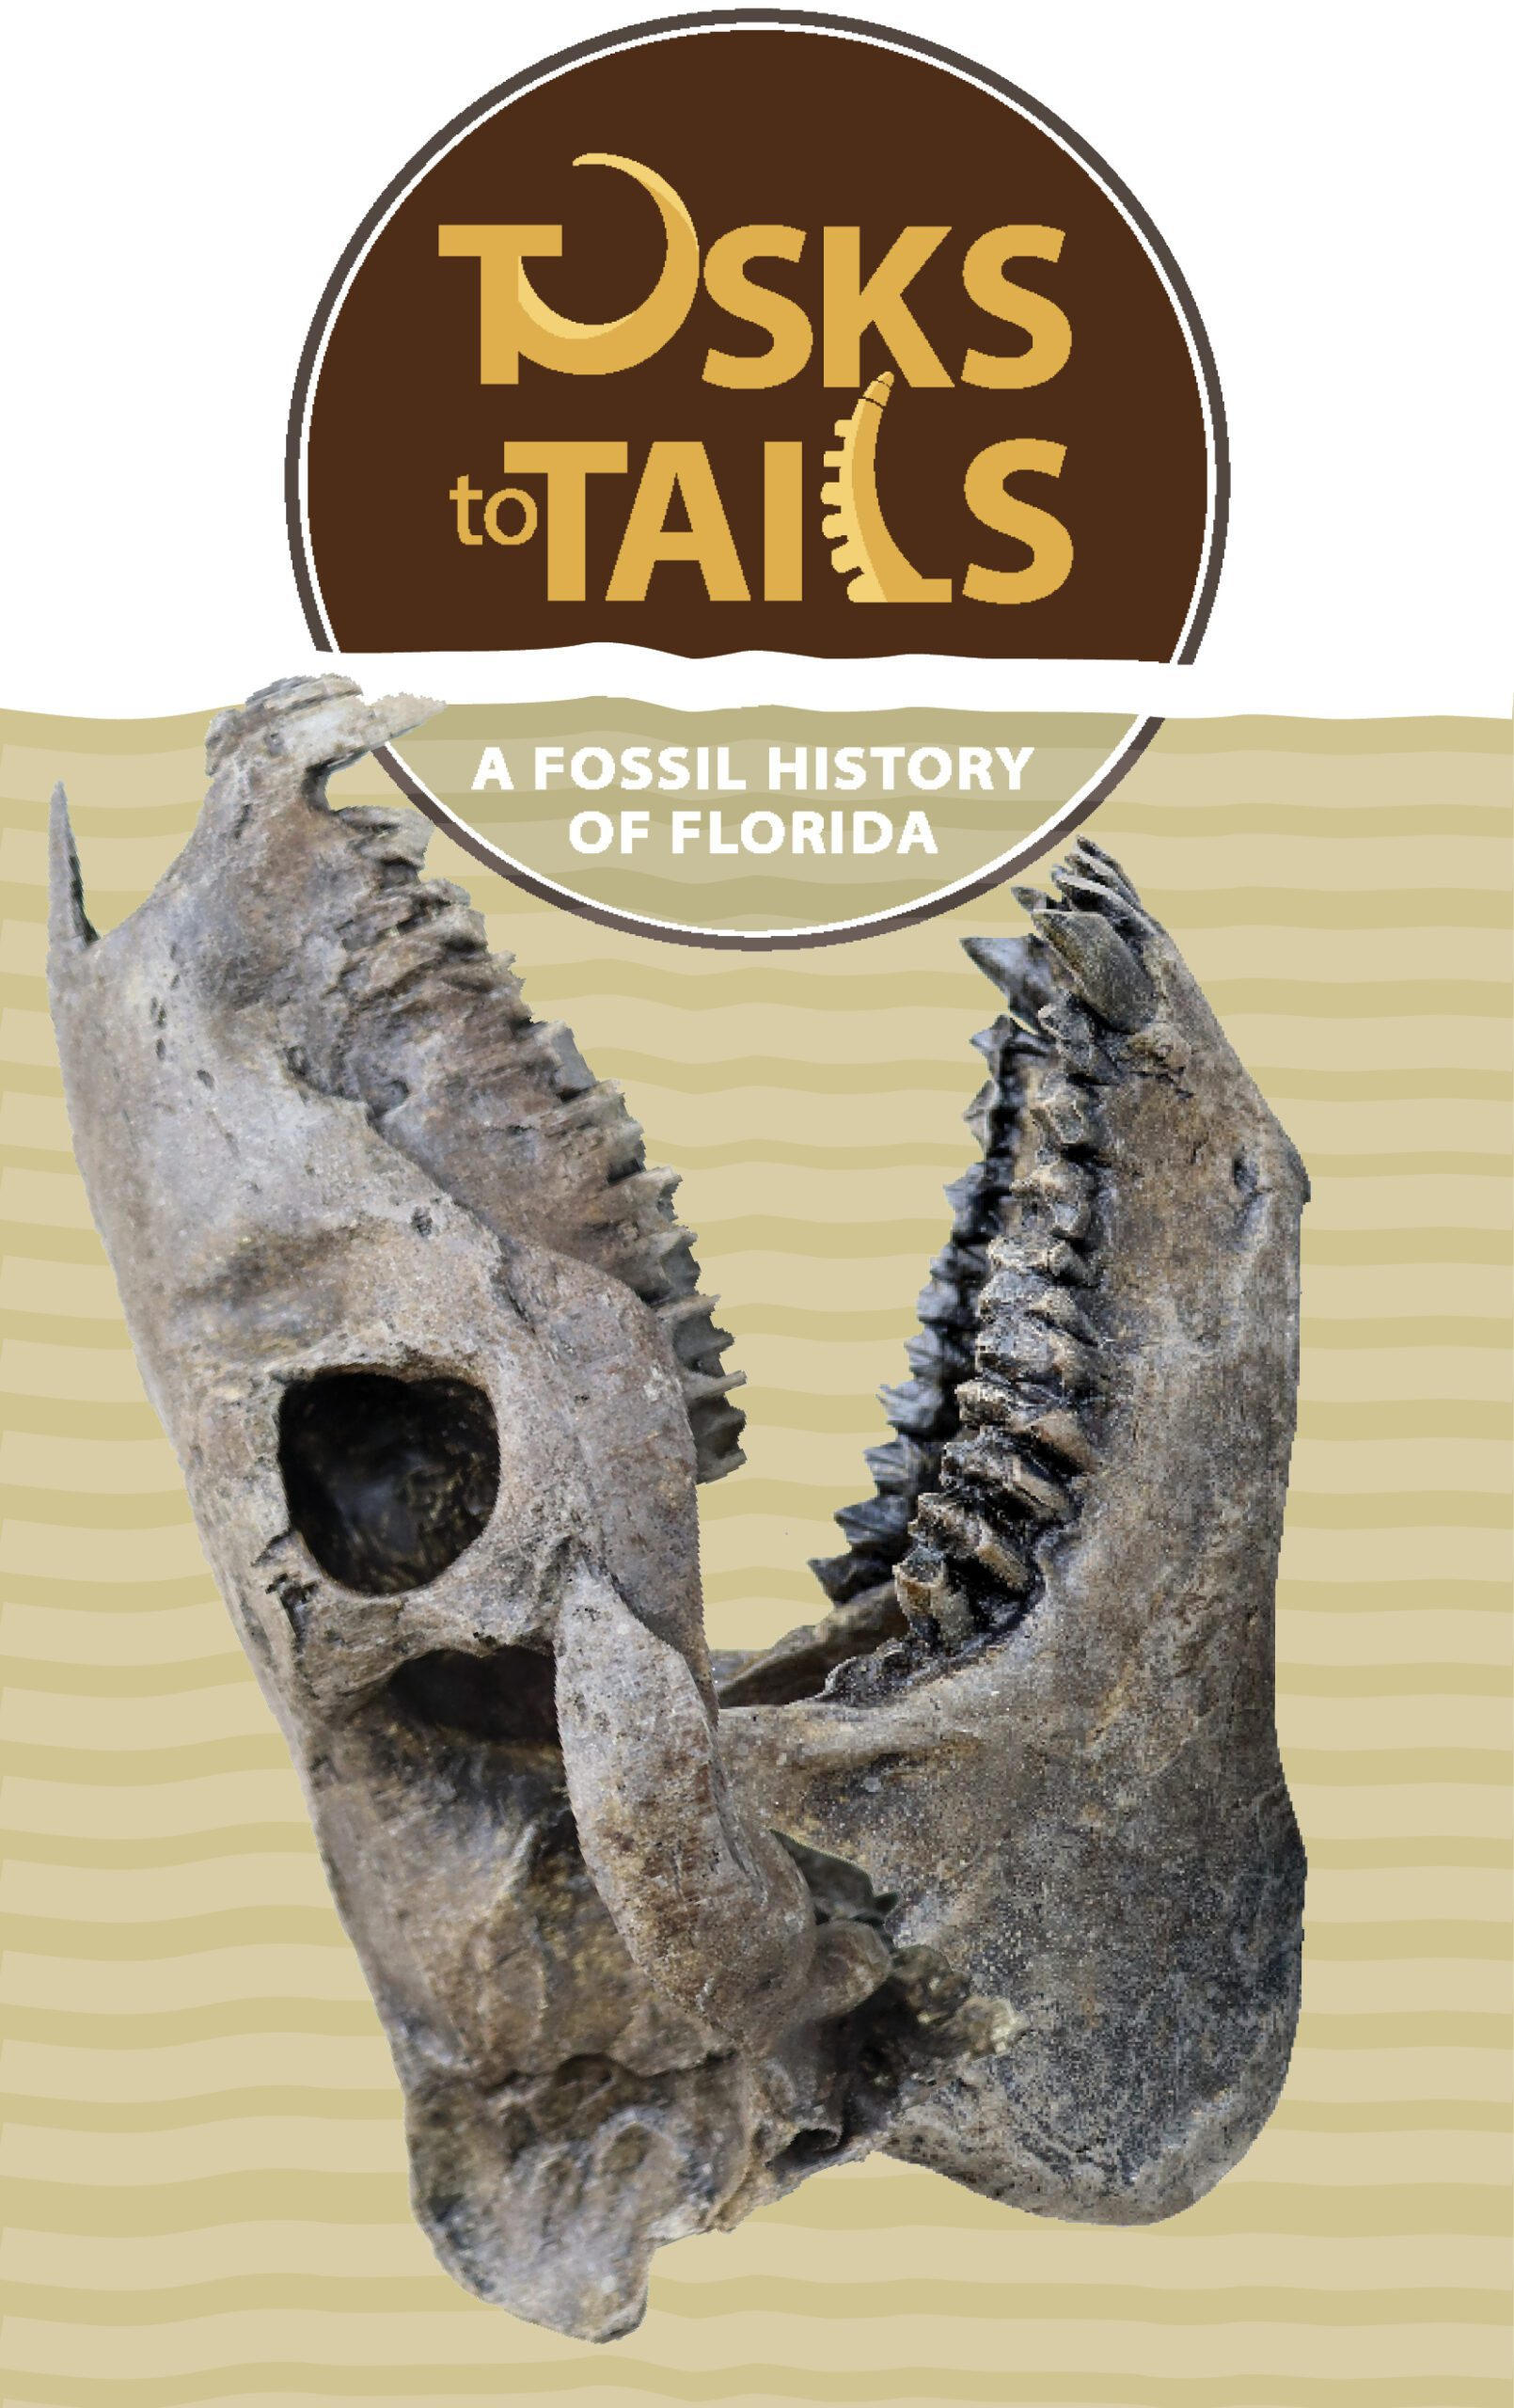 Tampa Bay History Center -- Tusk to Tails: A Fossil History of Florida exhibit